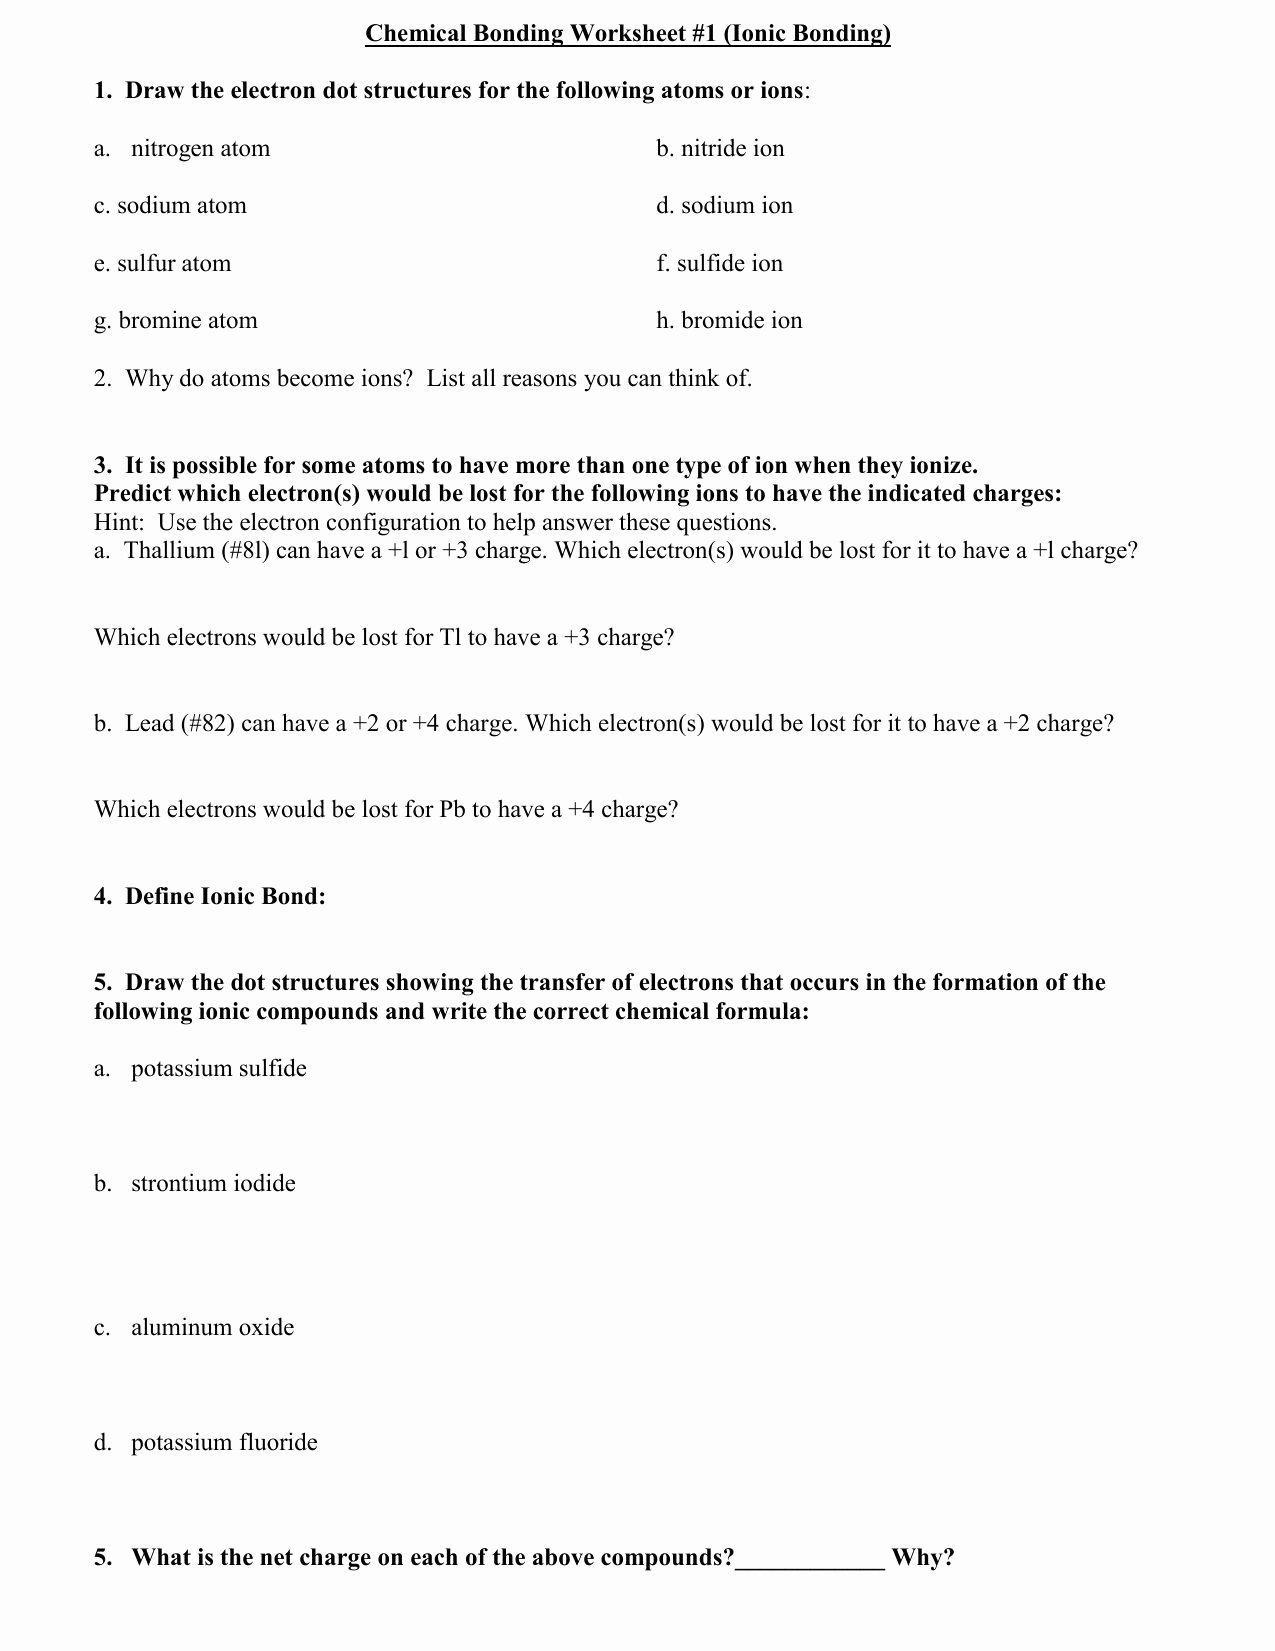 Lewis Structures Worksheet with Answers Luxury Lewis Dot Structures Worksheet 1 Answer Key